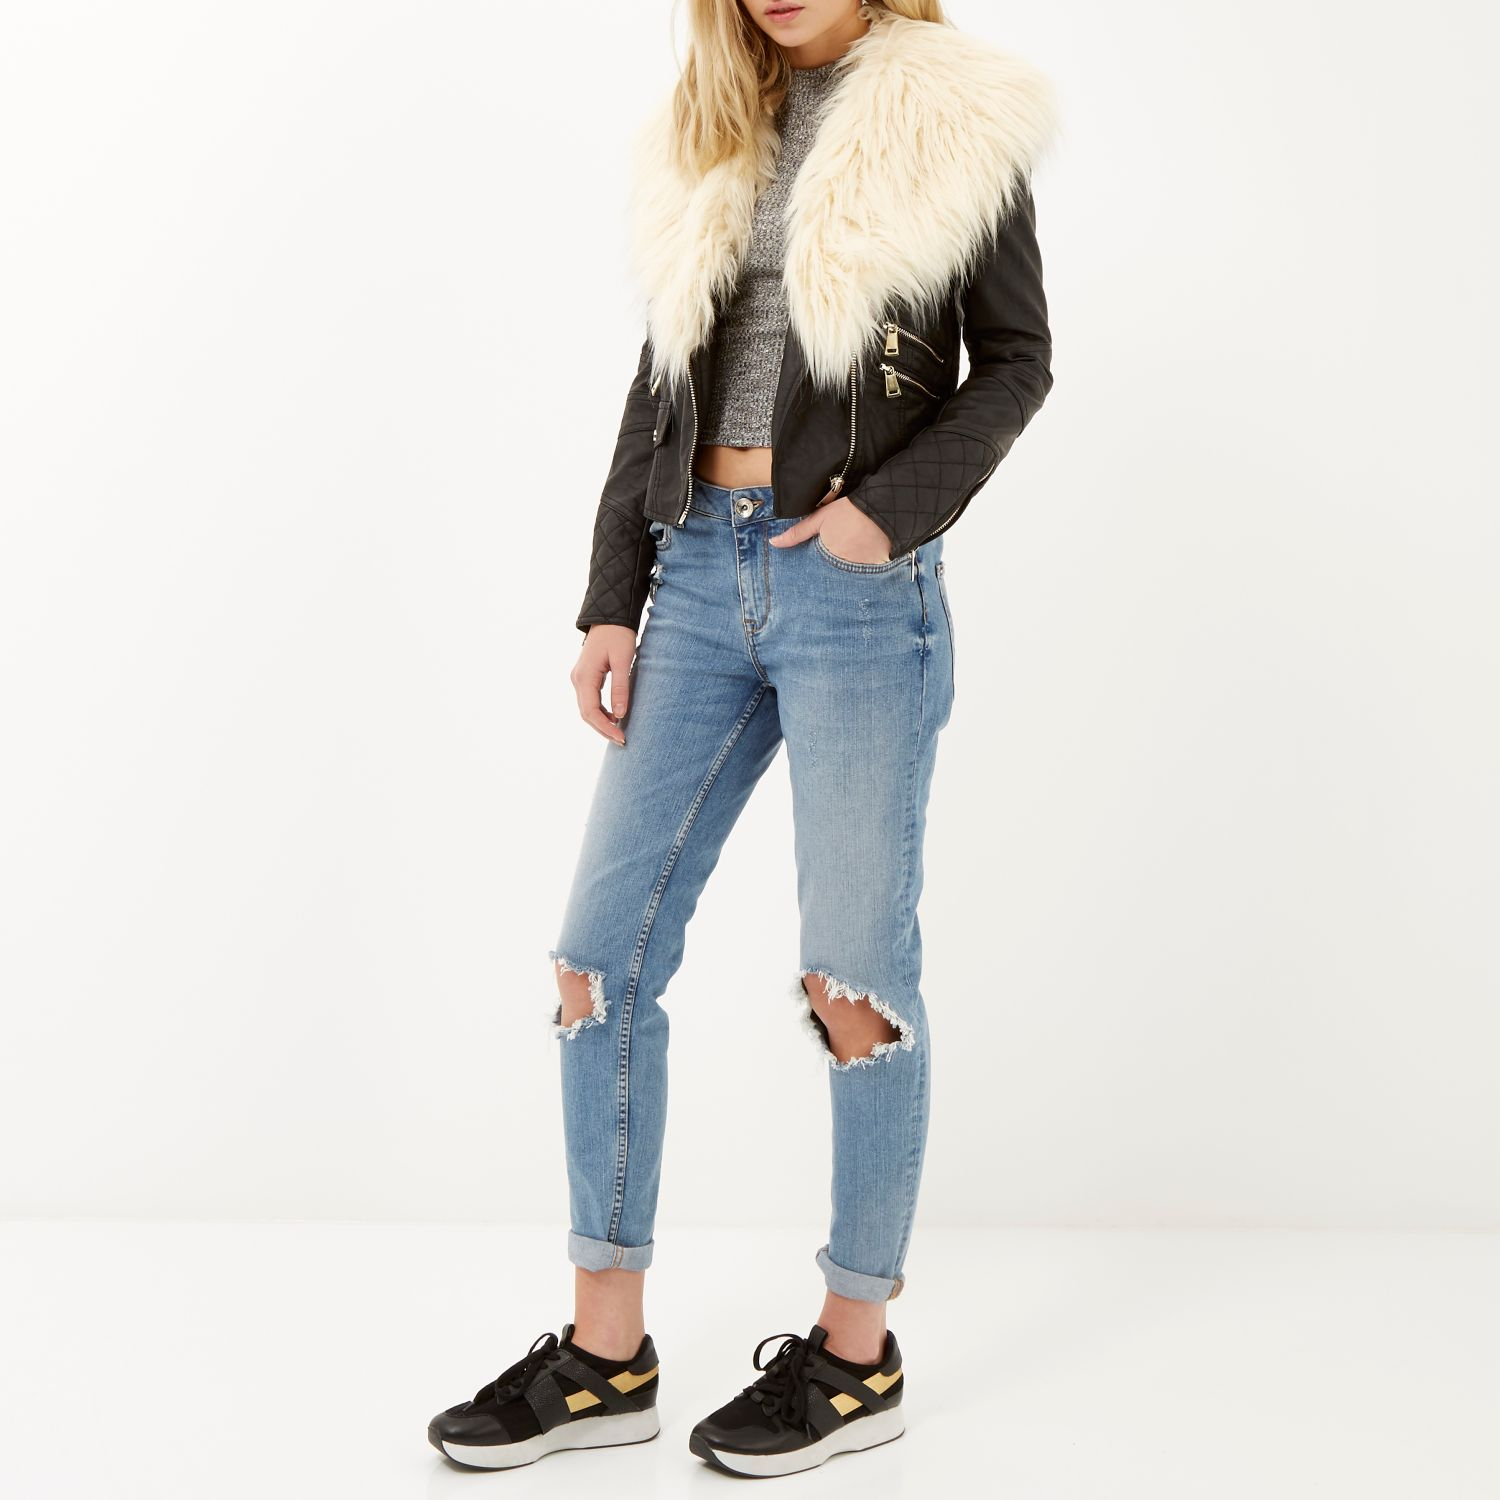 a04fc10ac2426 River Island Black Leather-look Faux Fur Trim Biker Jacket in Black ...